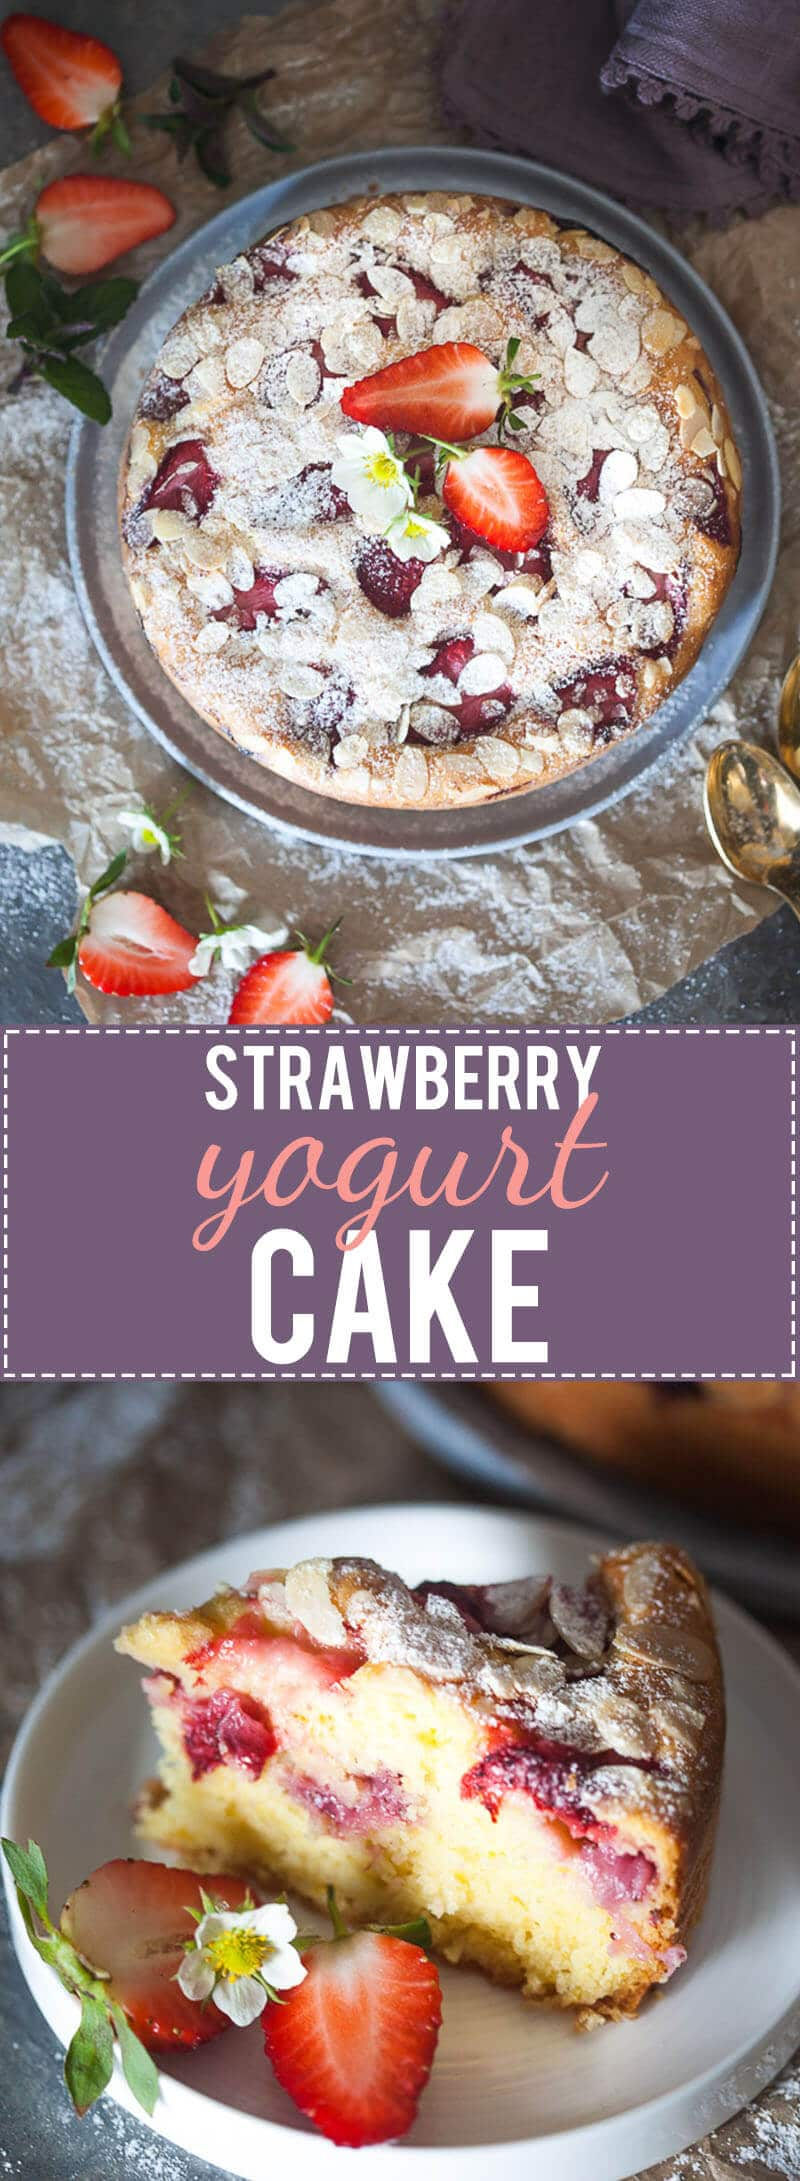 This Strawberry Yogurt Cake is flauffy, moist and dairy-free. A perfect Spring cake!   www.vibrantplate.com